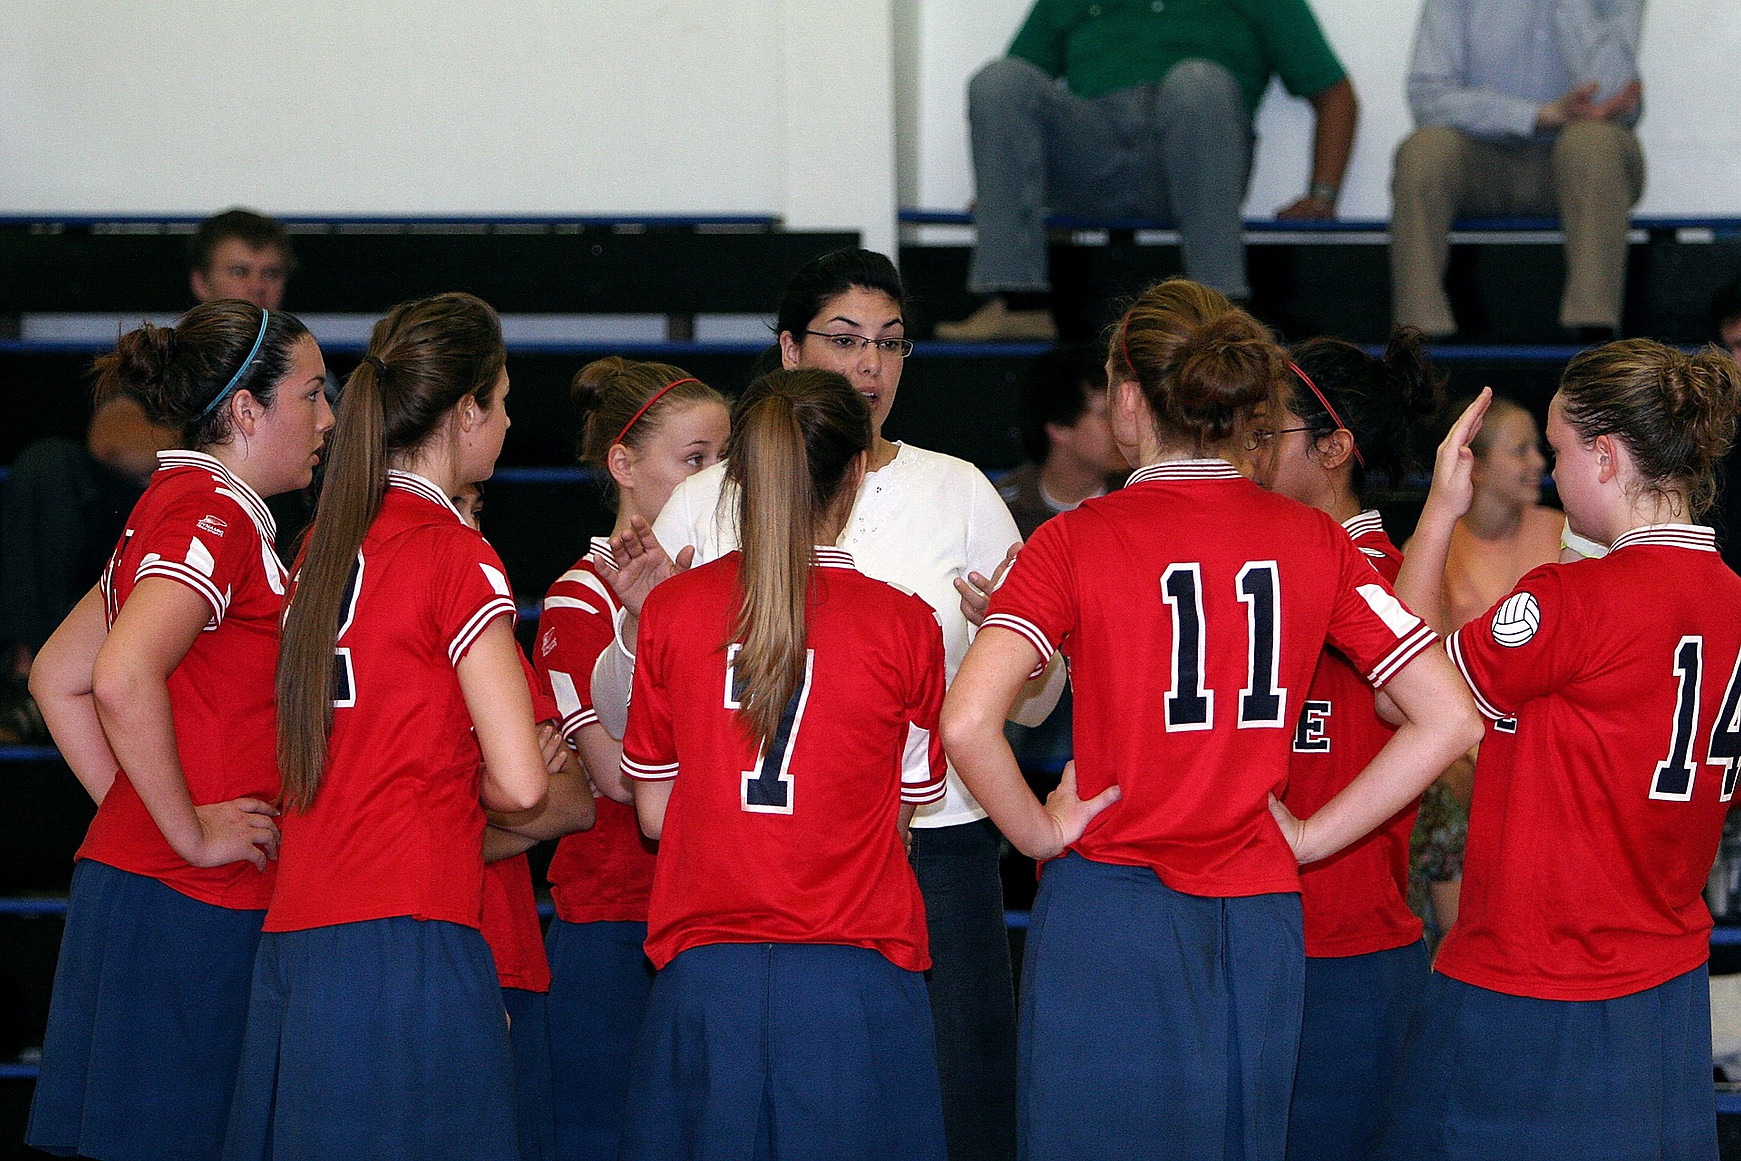 volleyball-team-1586522_1920.jpg